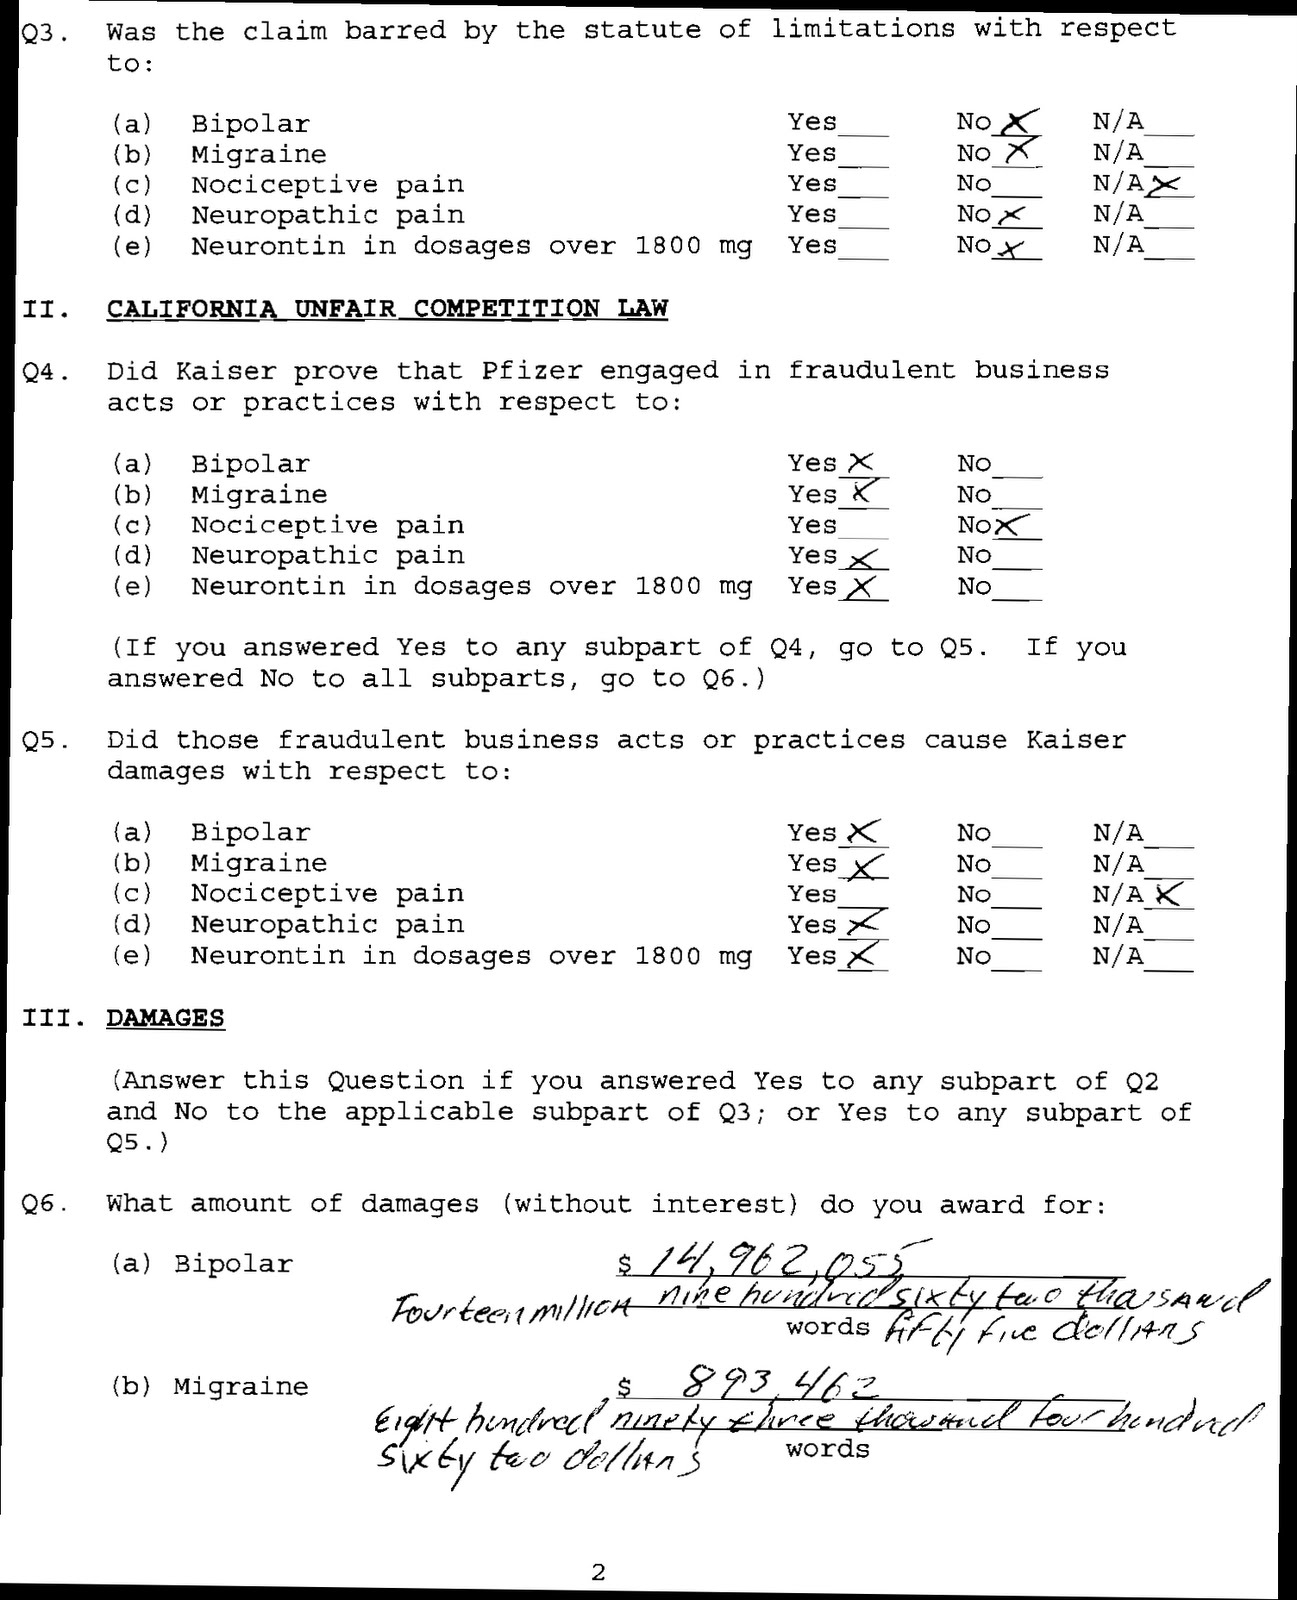 Handgun safety certificate sample questions images certificate handgun safety certificate sample questions choice image handgun safety certificate sample questions images certificate handgun safety 1betcityfo Images